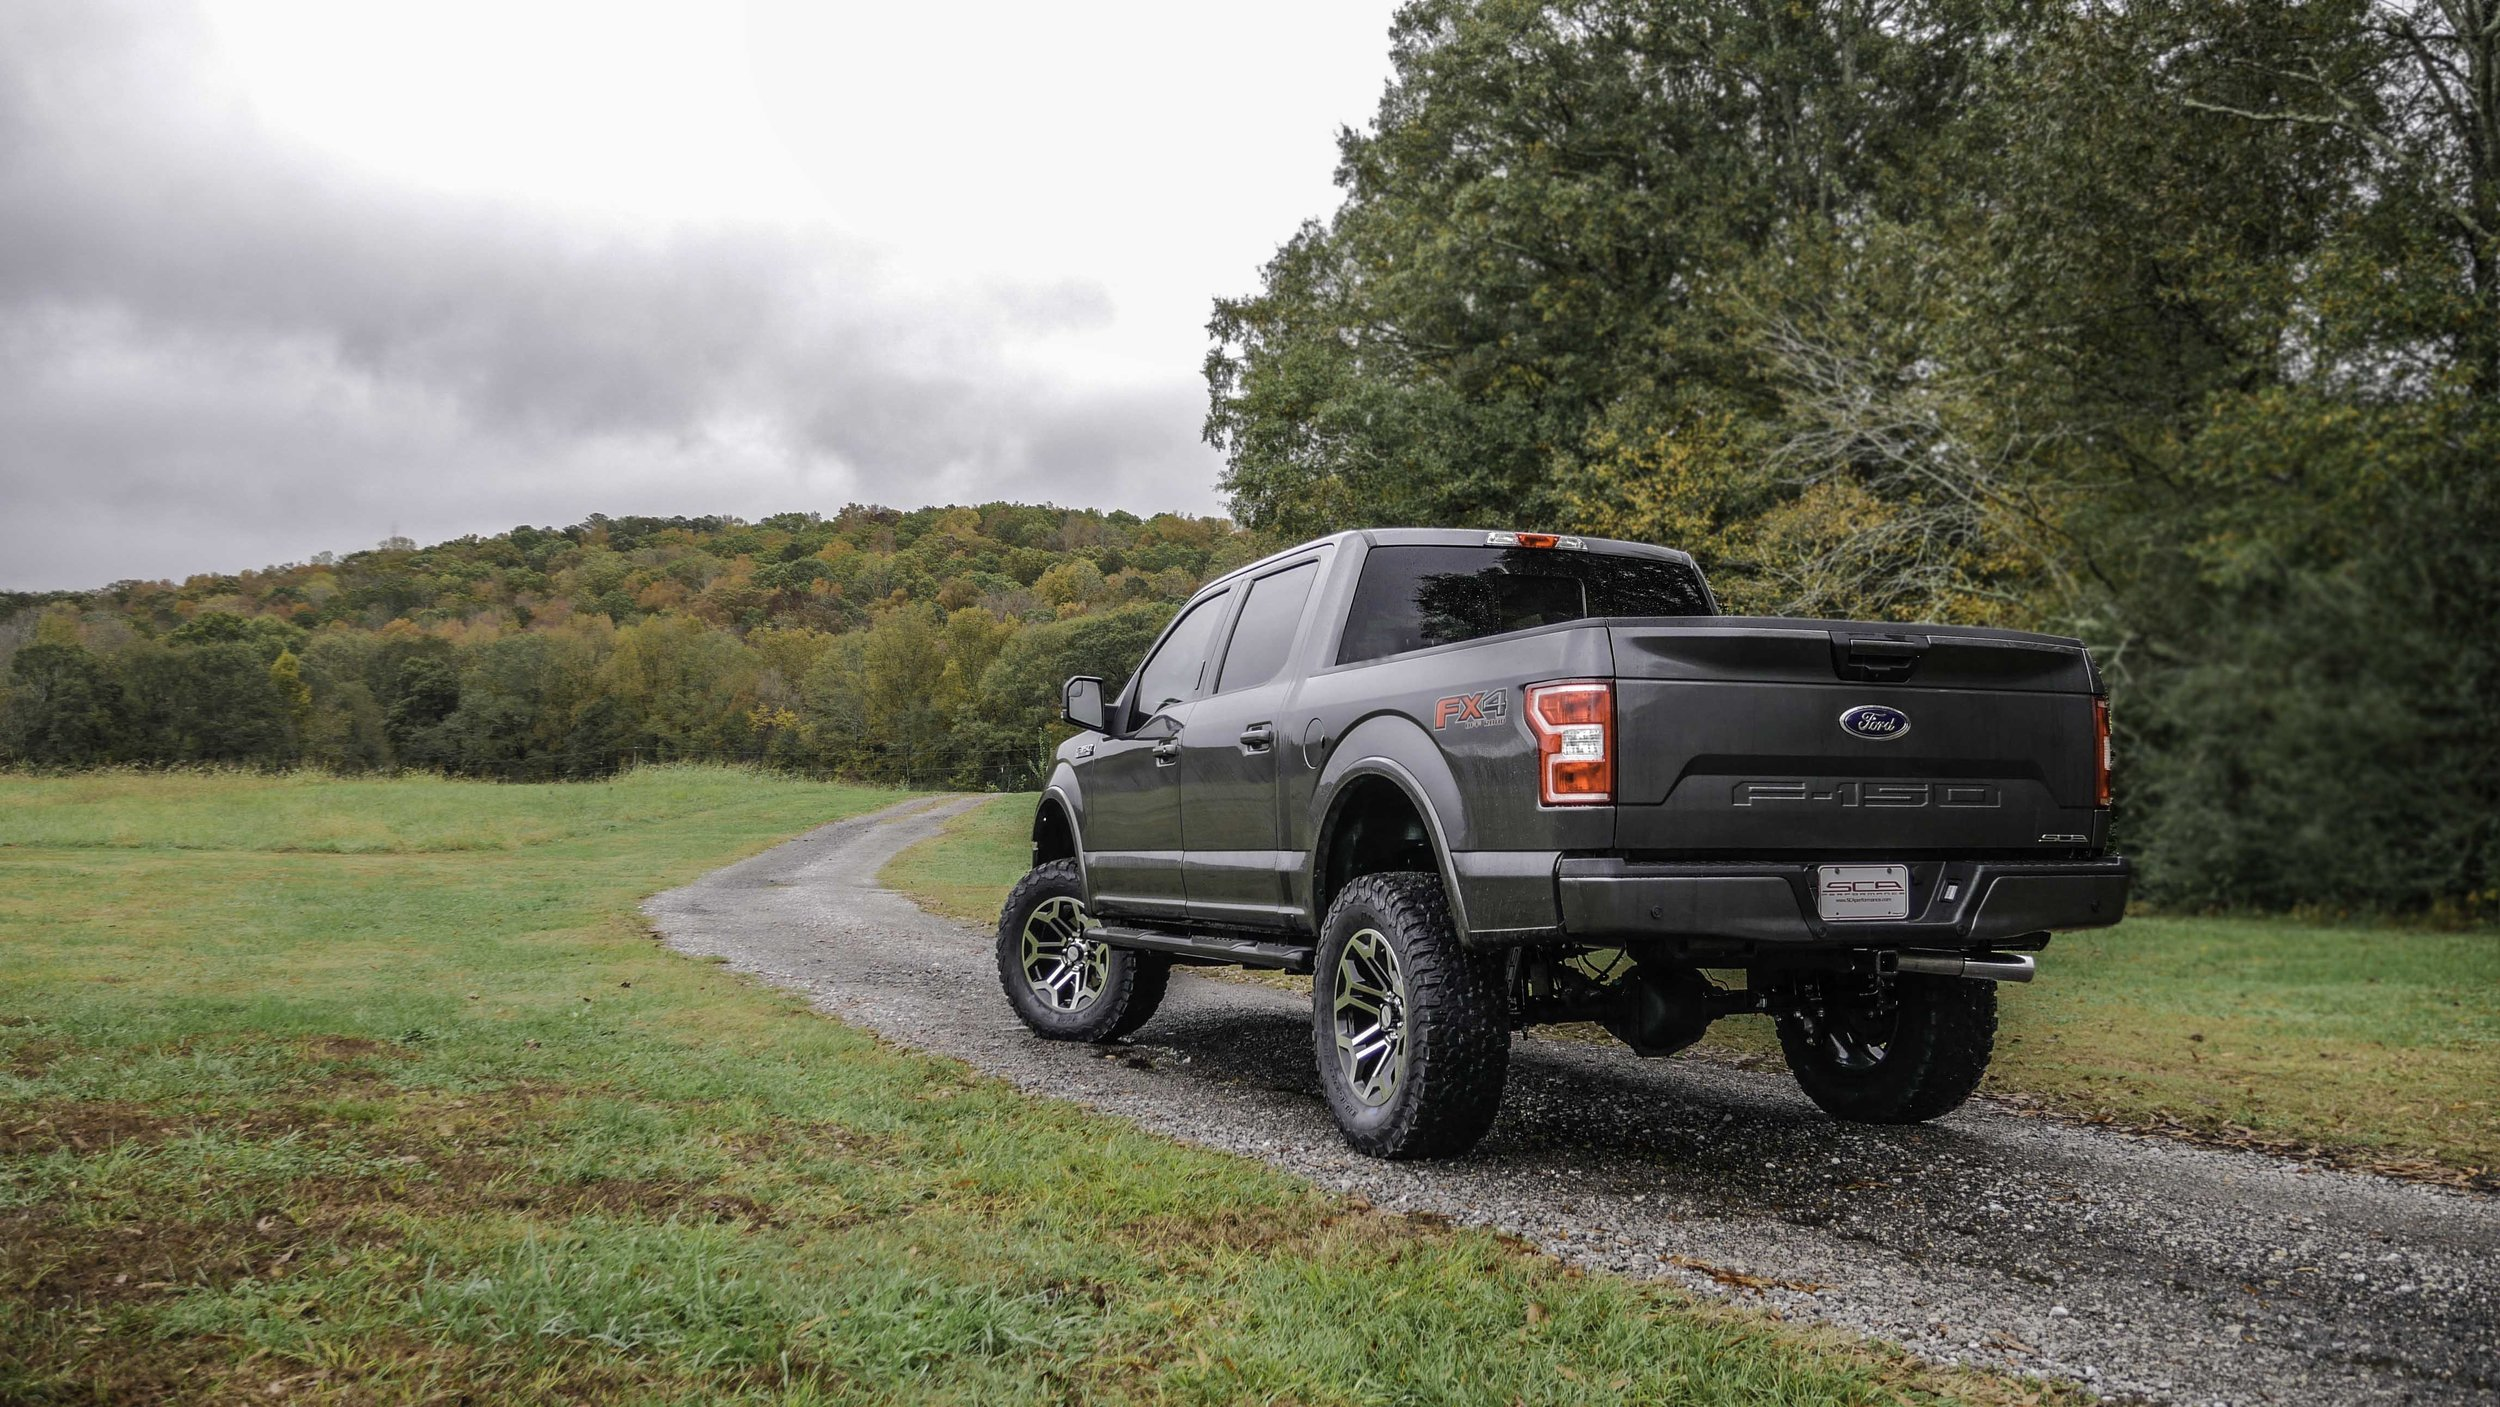 Ford SCA Offroad Rear Magnetic.jpg